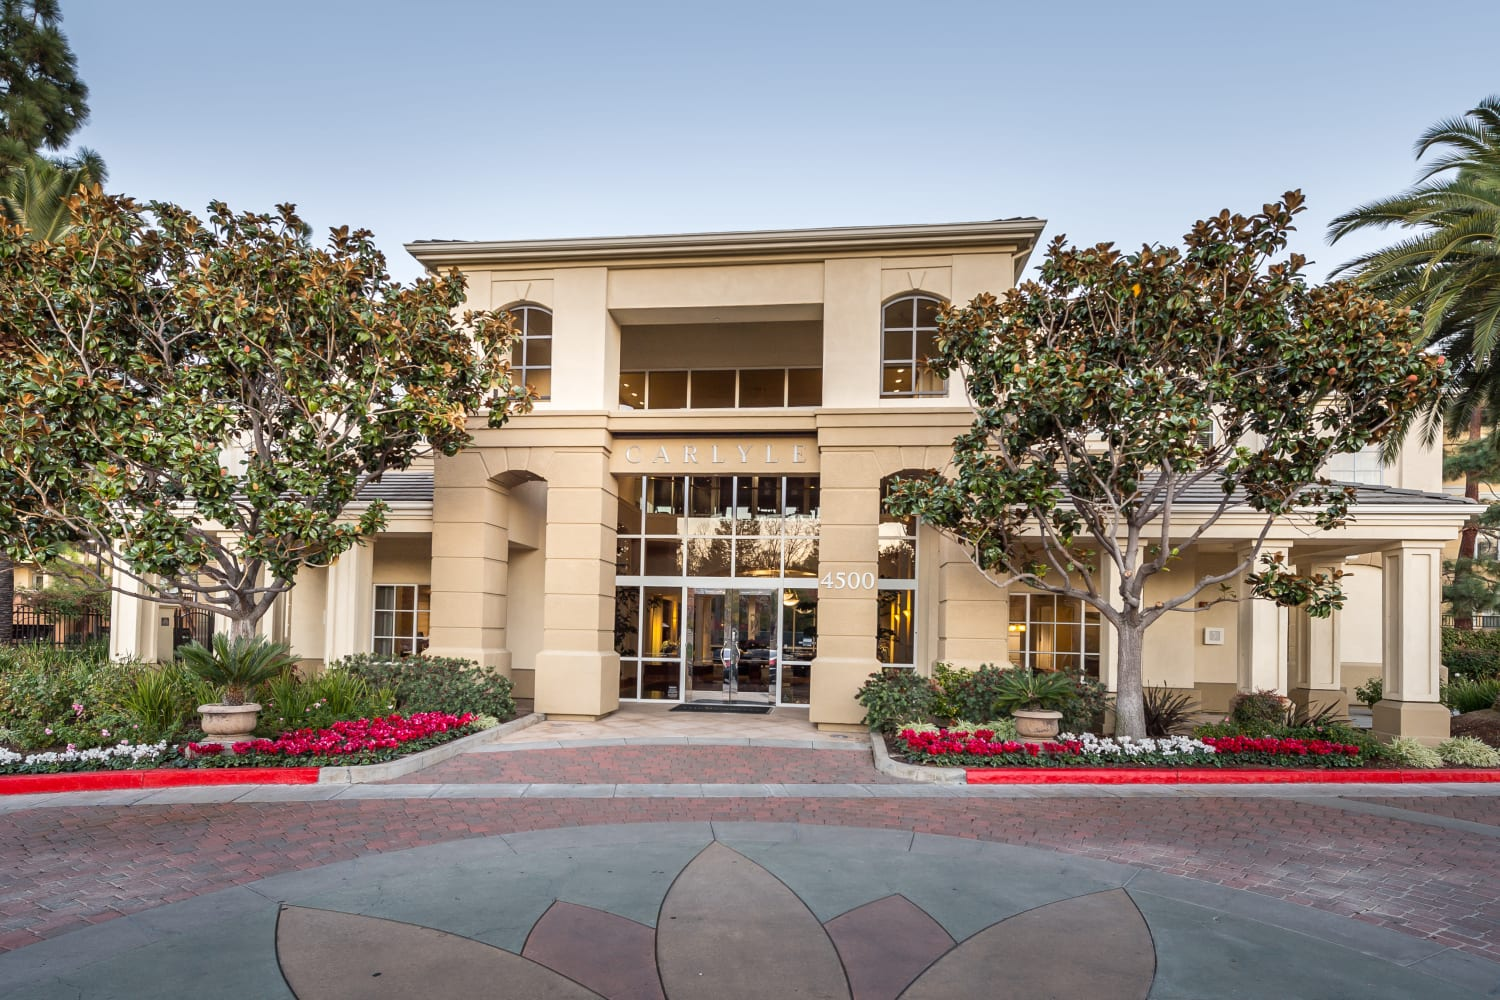 Resort inspired building design at The Carlyle in Santa Clara, California